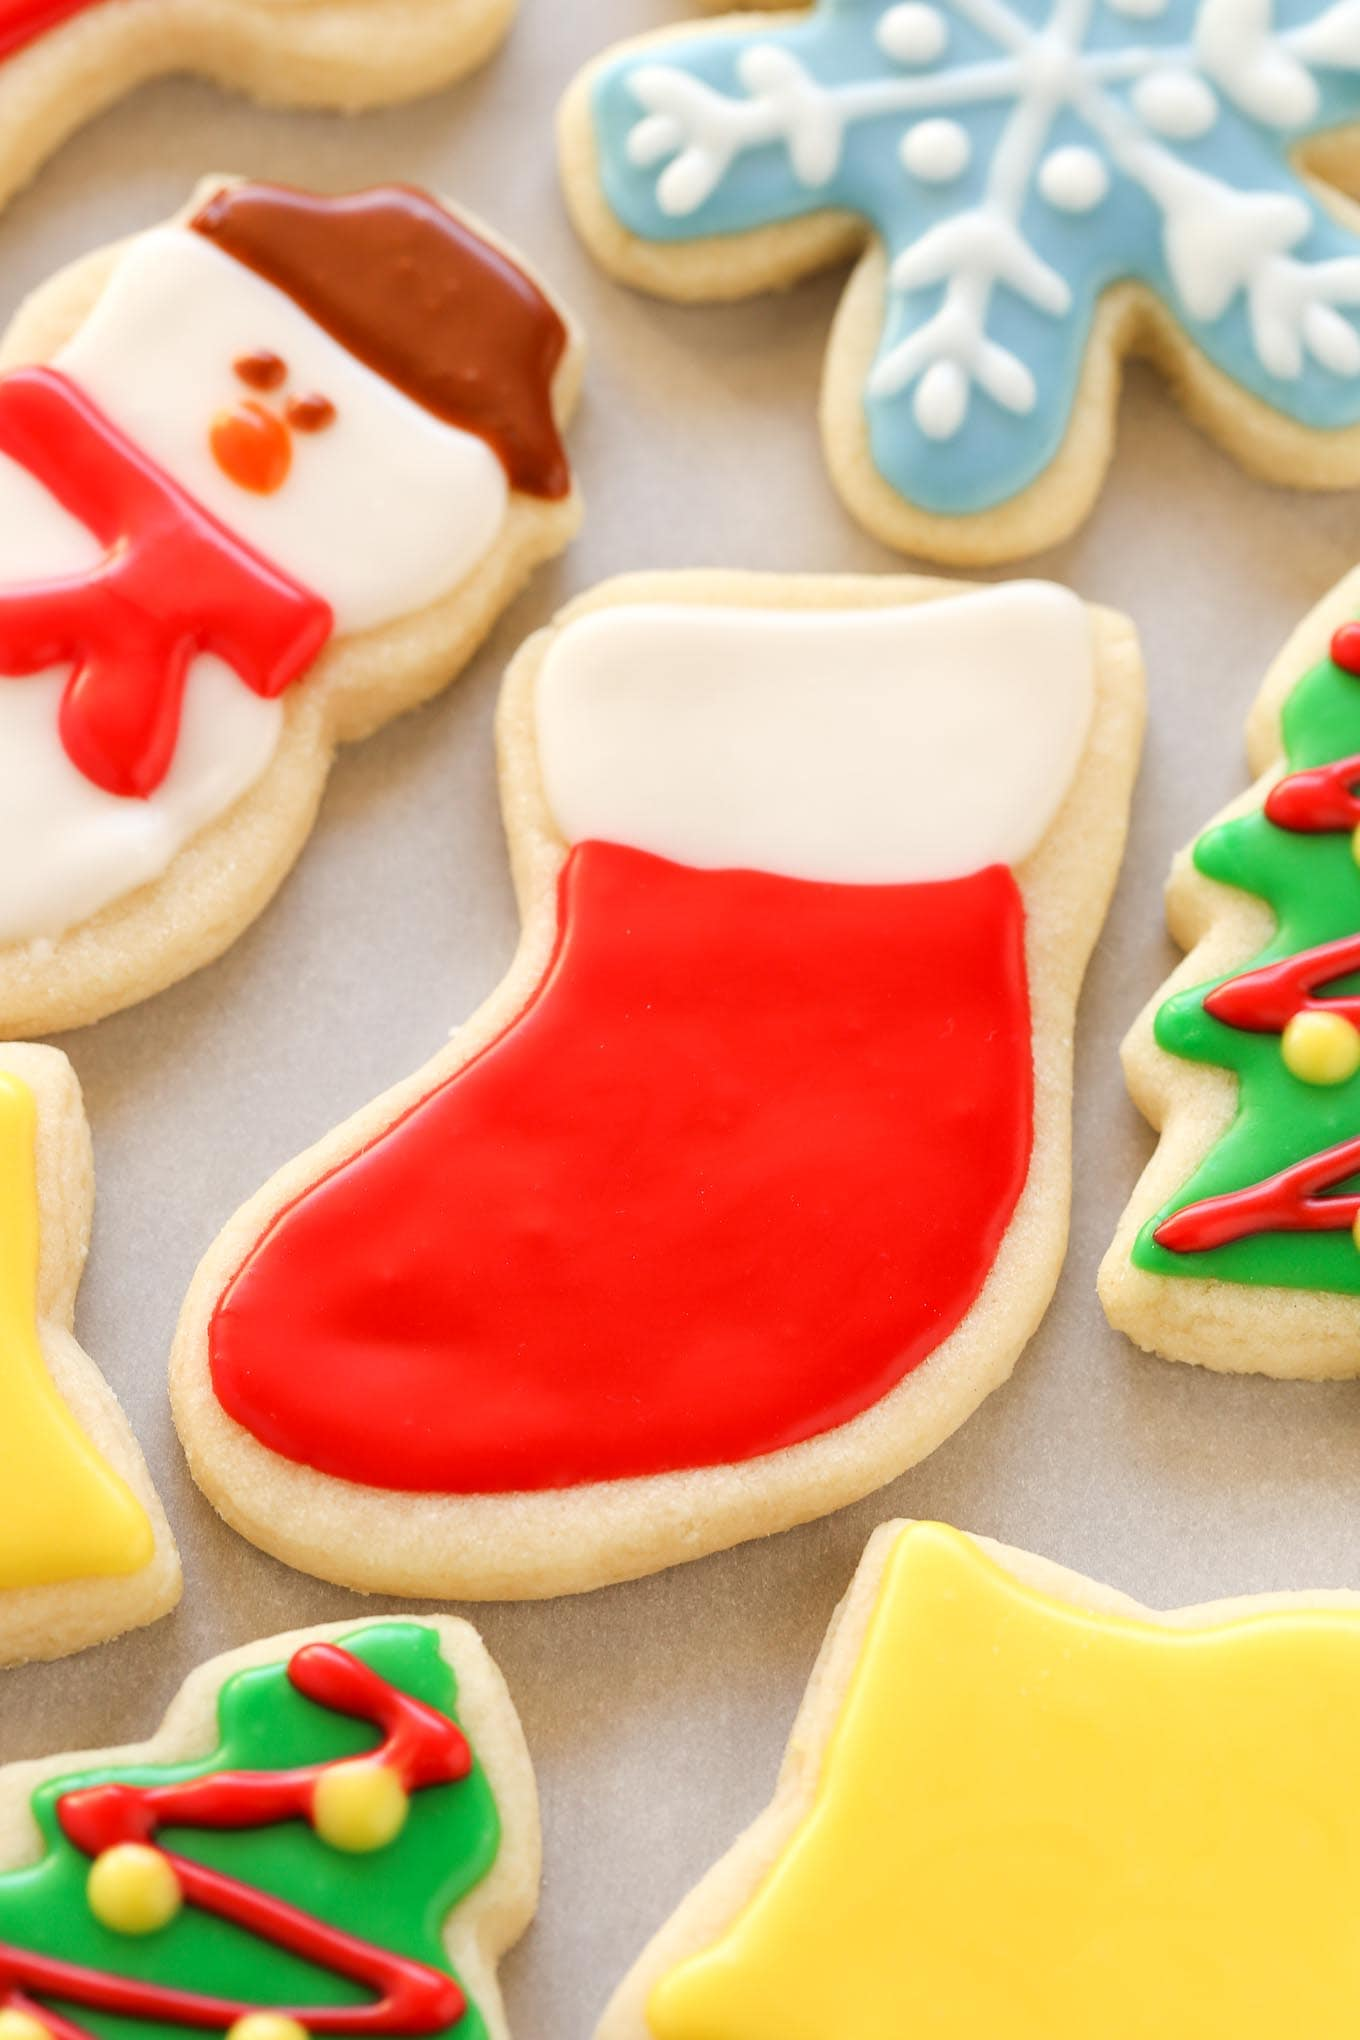 Super soft cut-out sugar cookies decorated with an easy icing. These Christmas Cut-Out Sugar Cookies are so fun to decorate and perfect for the holidays!